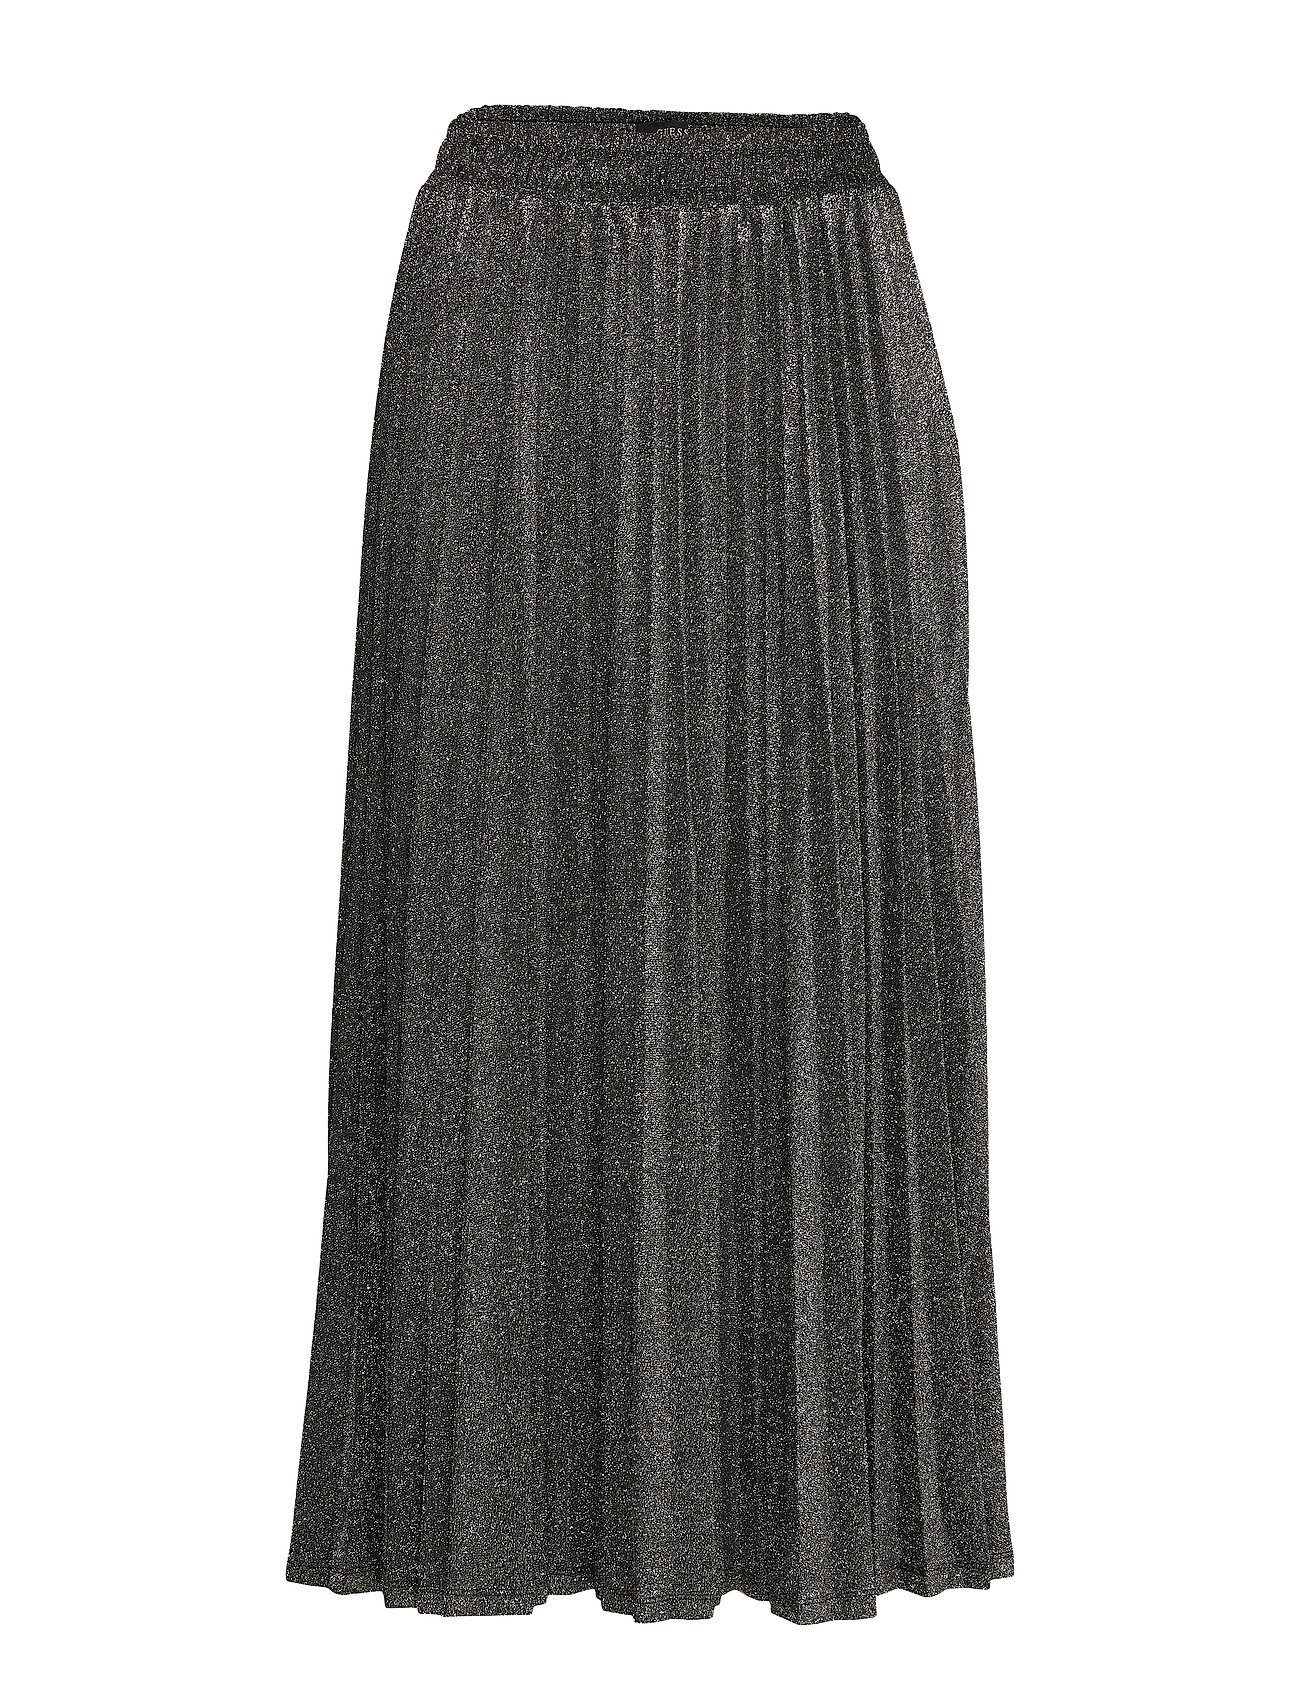 GUESS Jeans MARION SKIRT - BLACK AND SILVER